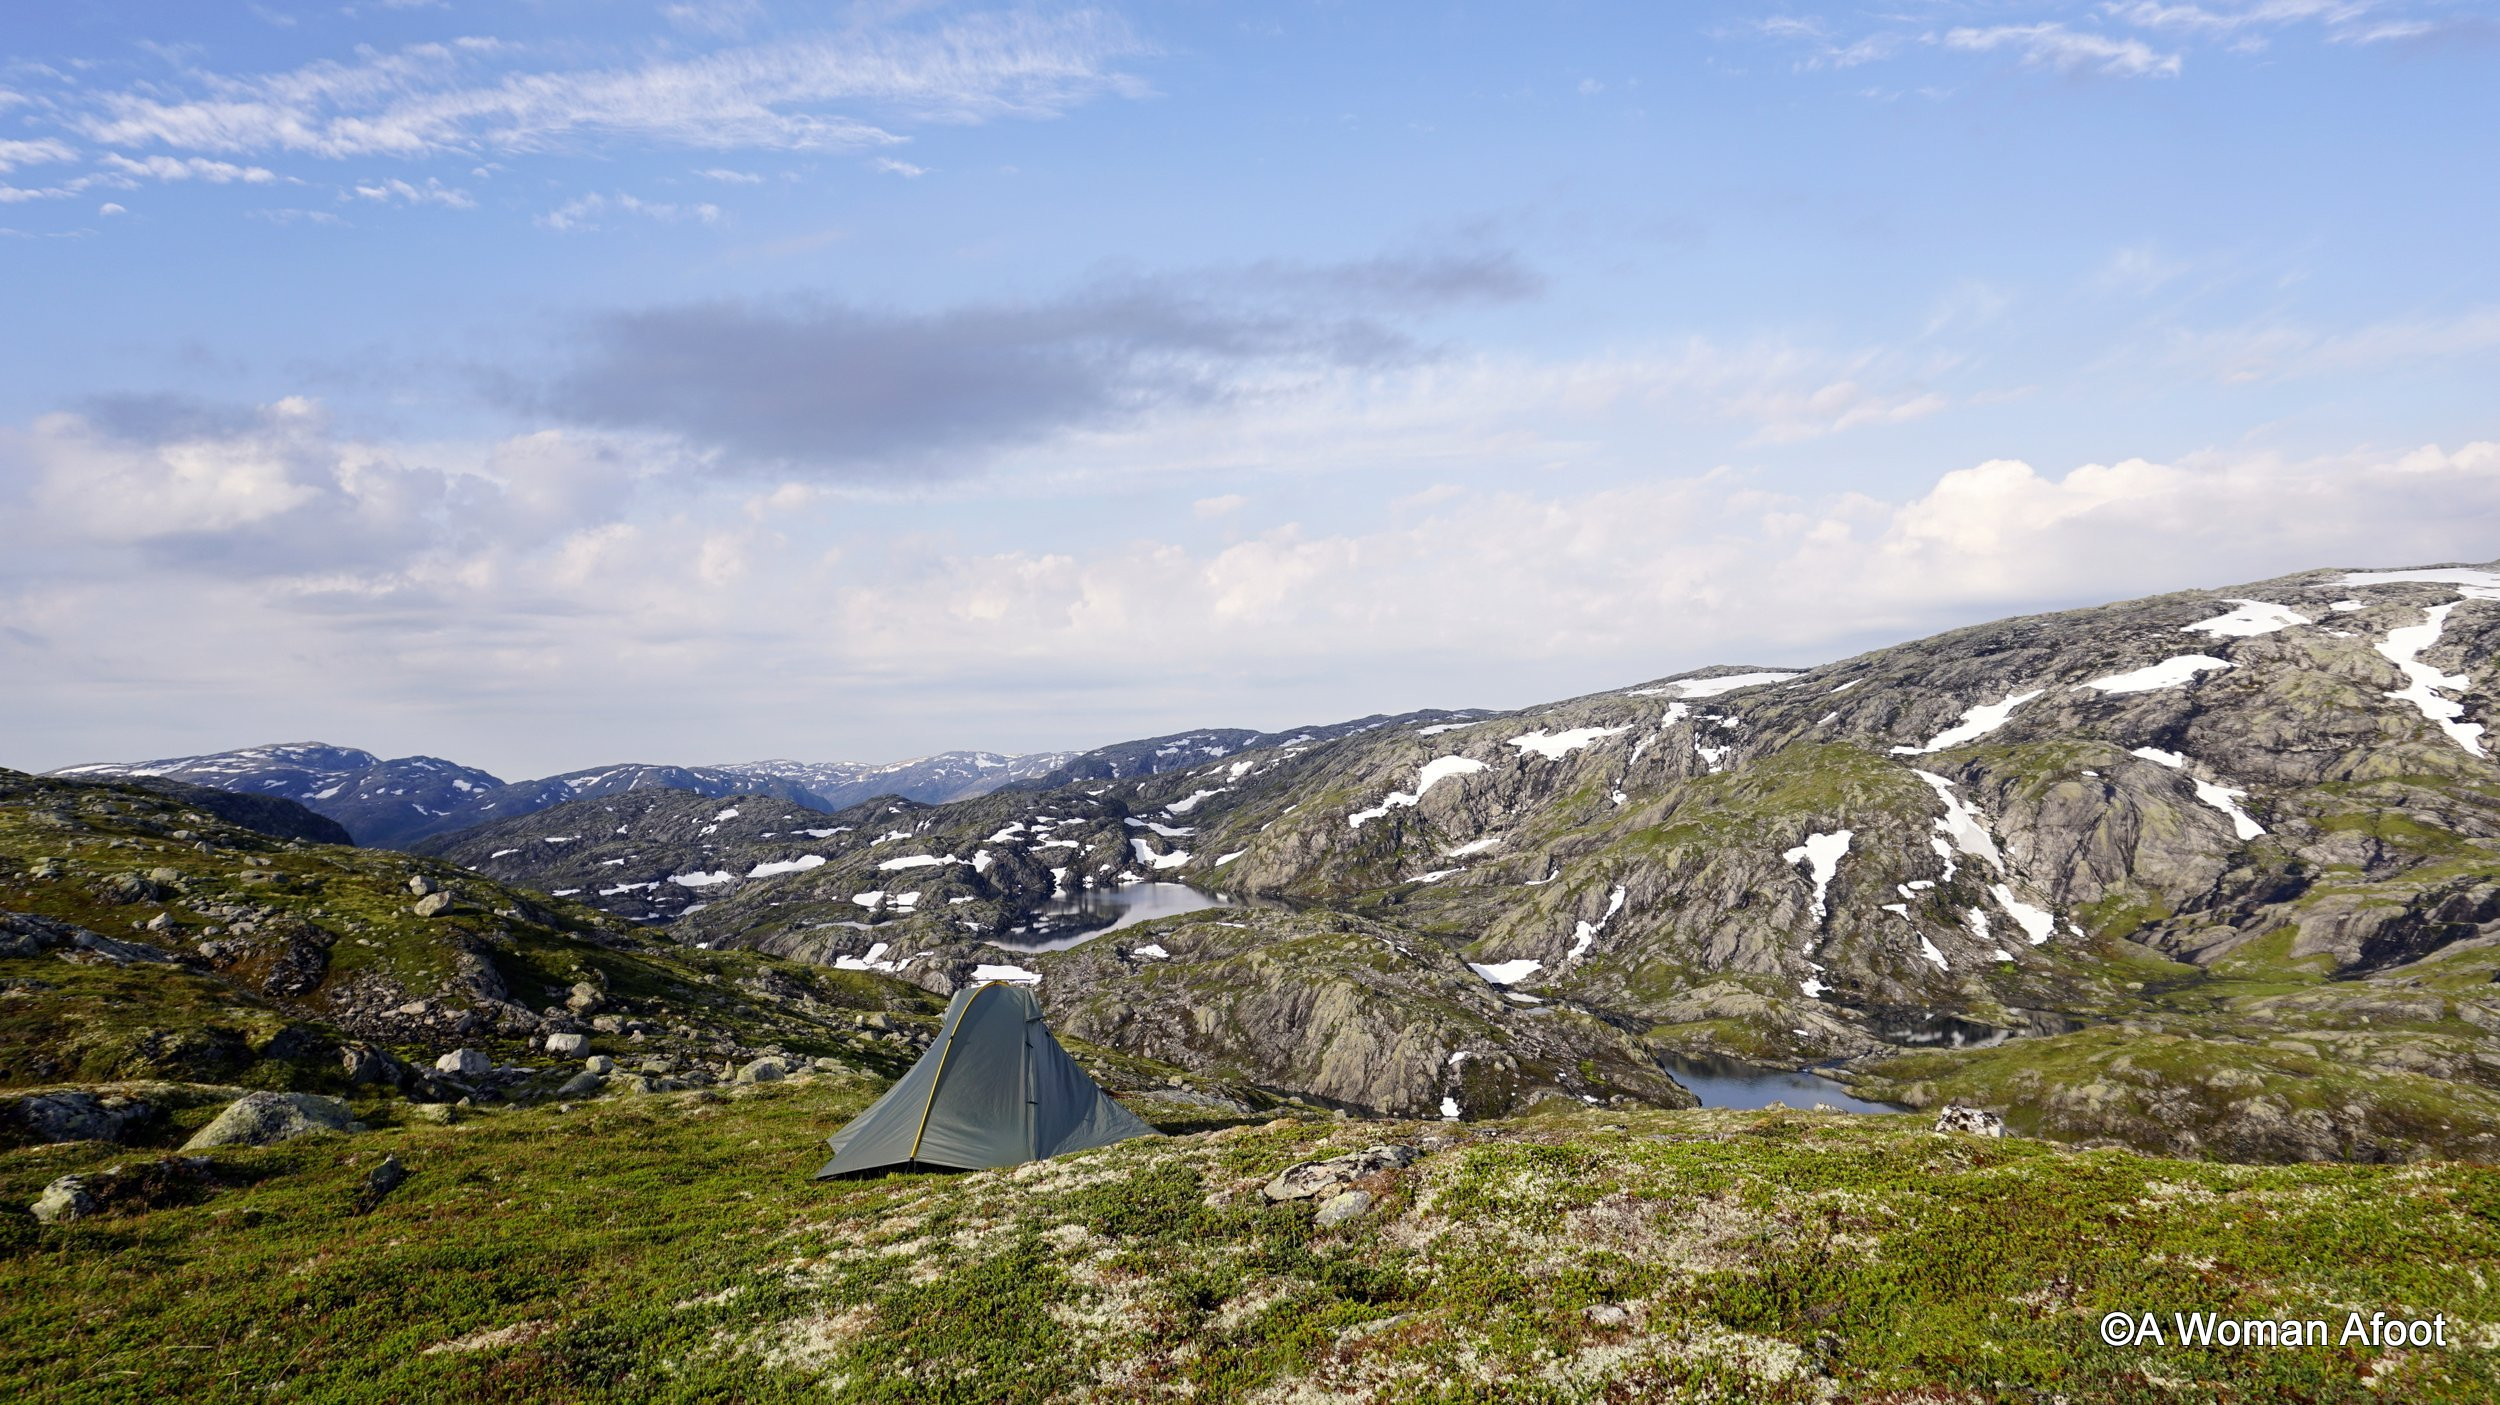 Conquer Your Fears and Love Camping Solo with those 15 awesome tips! Check what how to prepare and what to take for your first solo (wild) camping adventure! Guide to solo camping and hiking for women. awomanafoot.com | female solo hiking | camping tips | trekking | camping for women |#camping #solo #CampingSolo #CampingTips #Camping101 #CampingGear #CampingEssentials